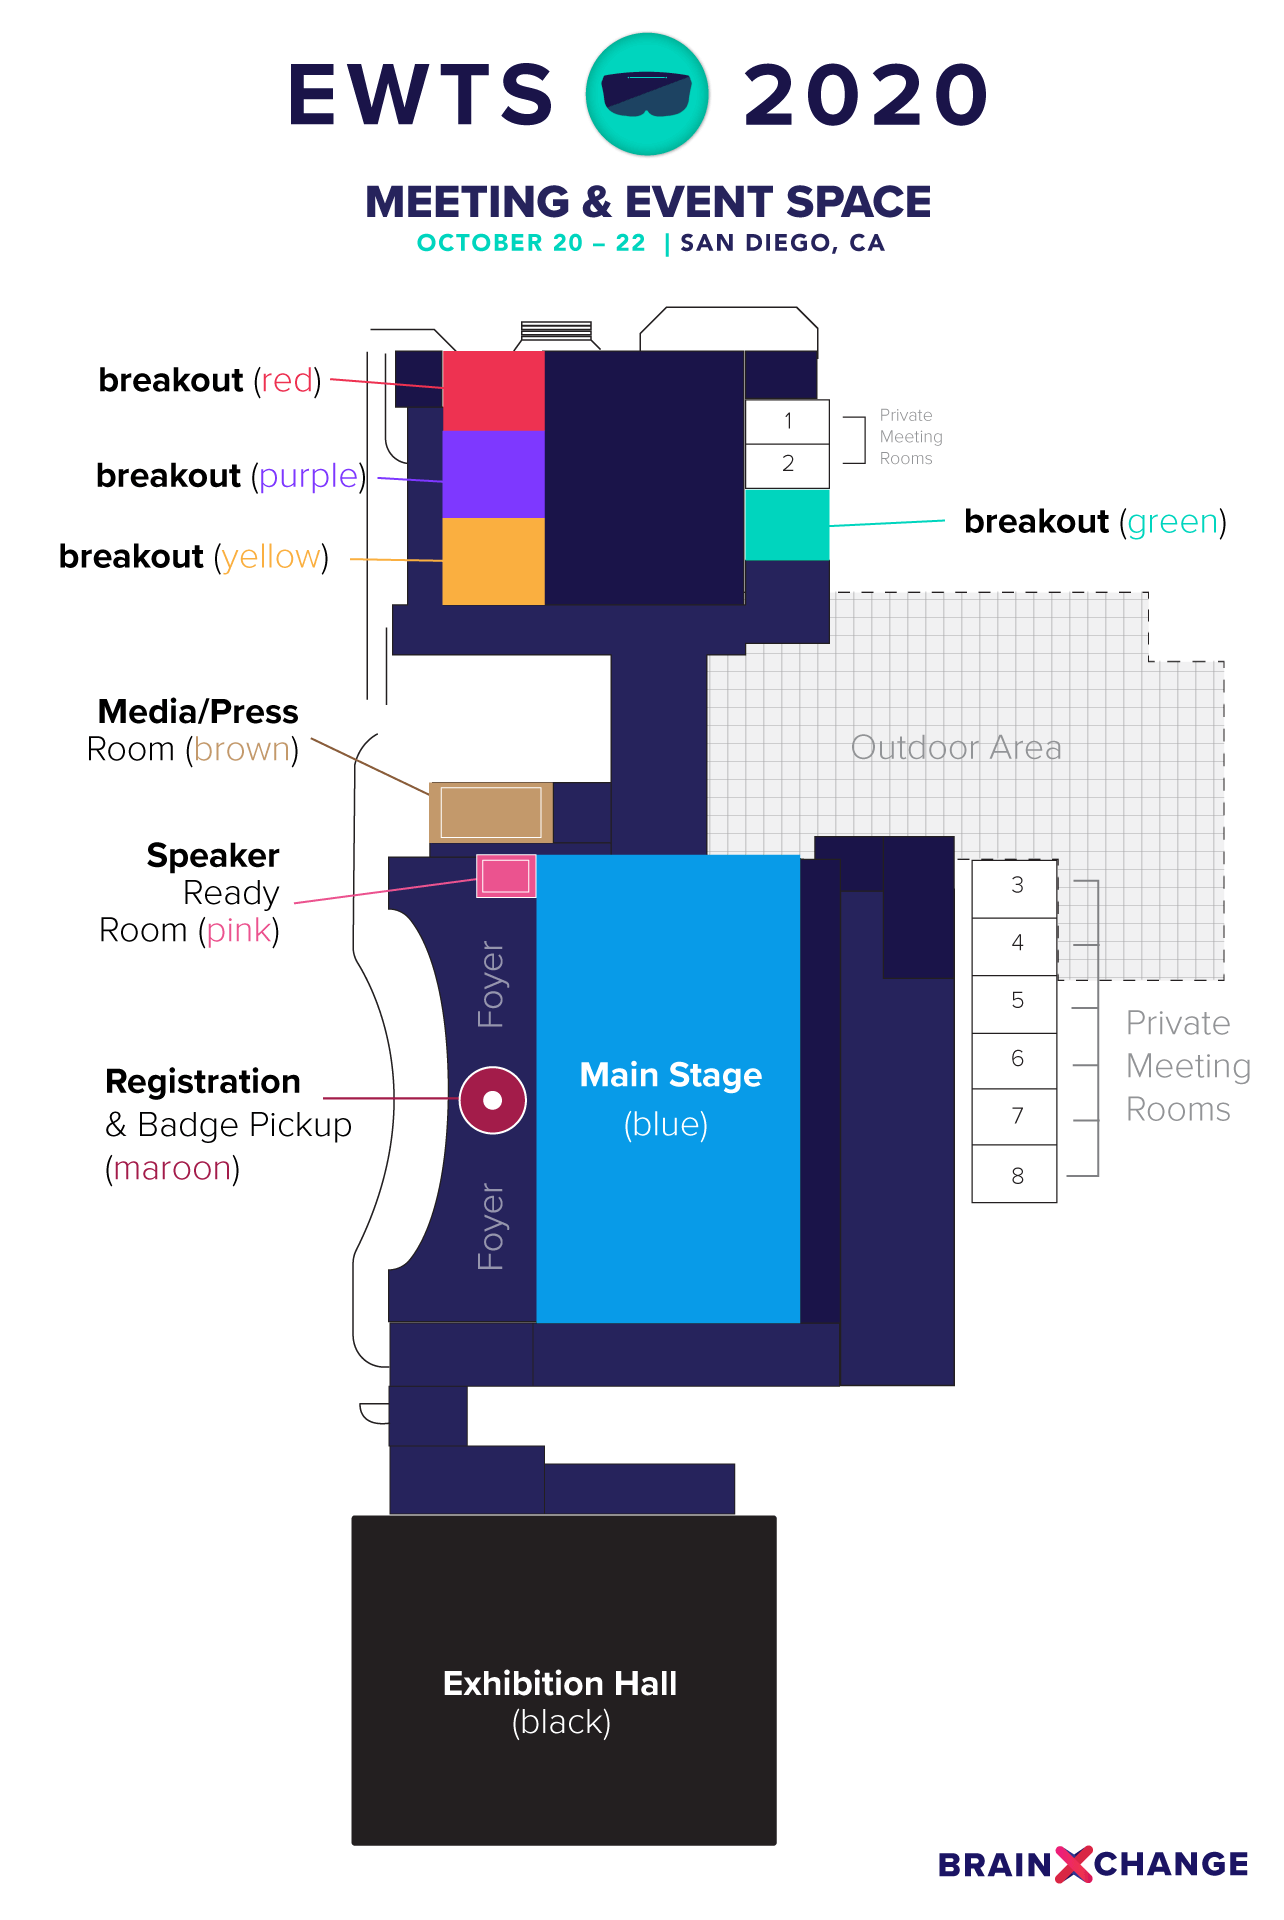 floorplan of the EWTS 2020 meeting and event space